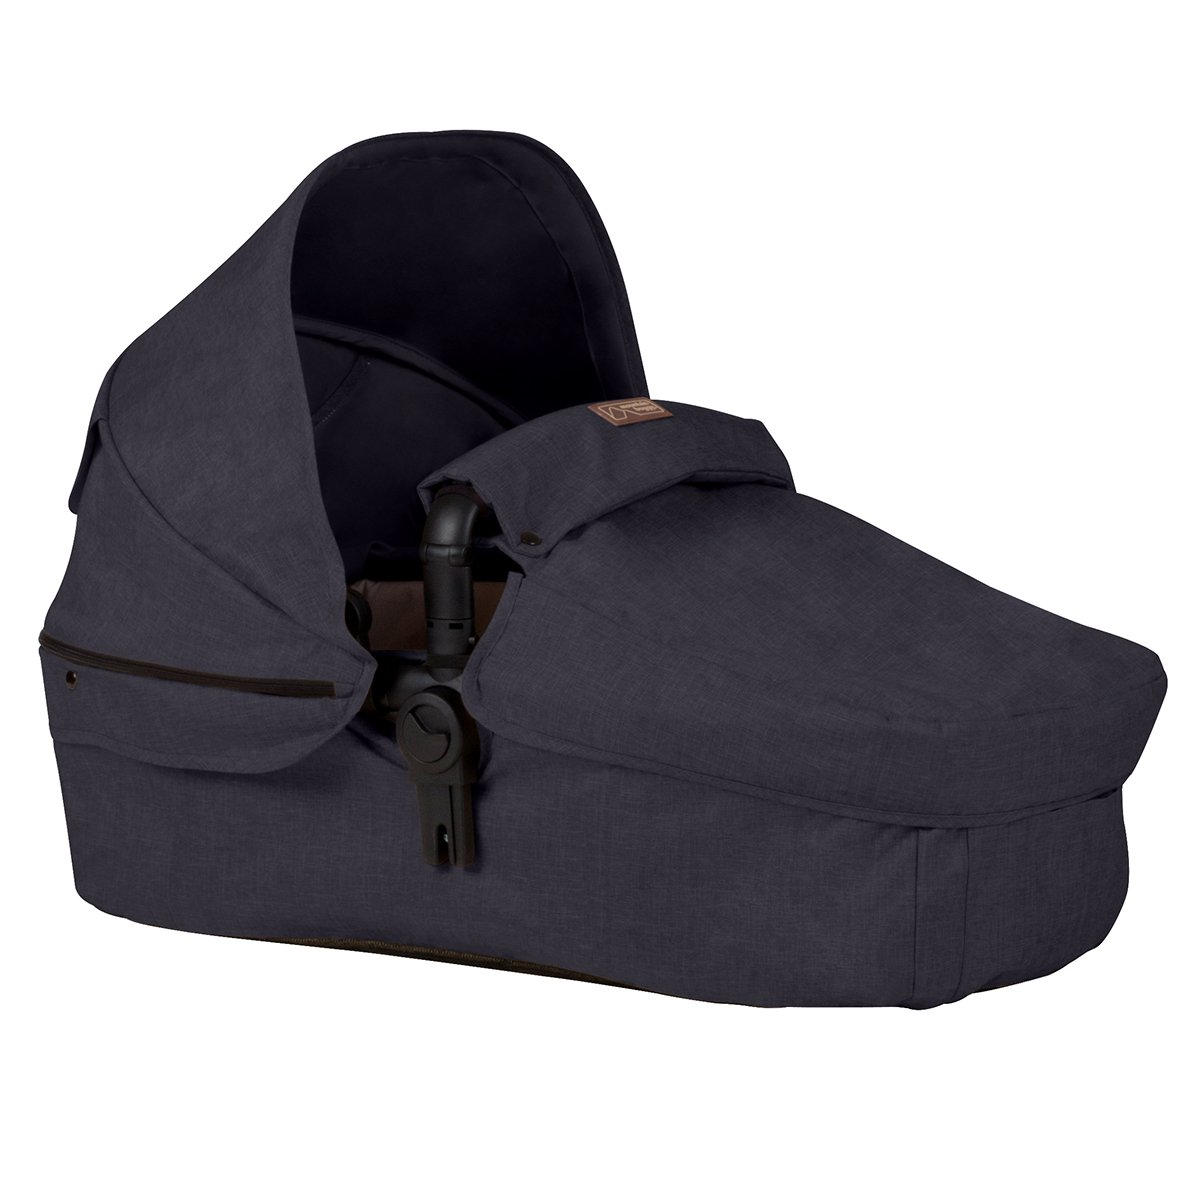 Mountain Buggy Cosmopolitan Carrycot Fabric Accessory, Black COSMOCC_V2_77